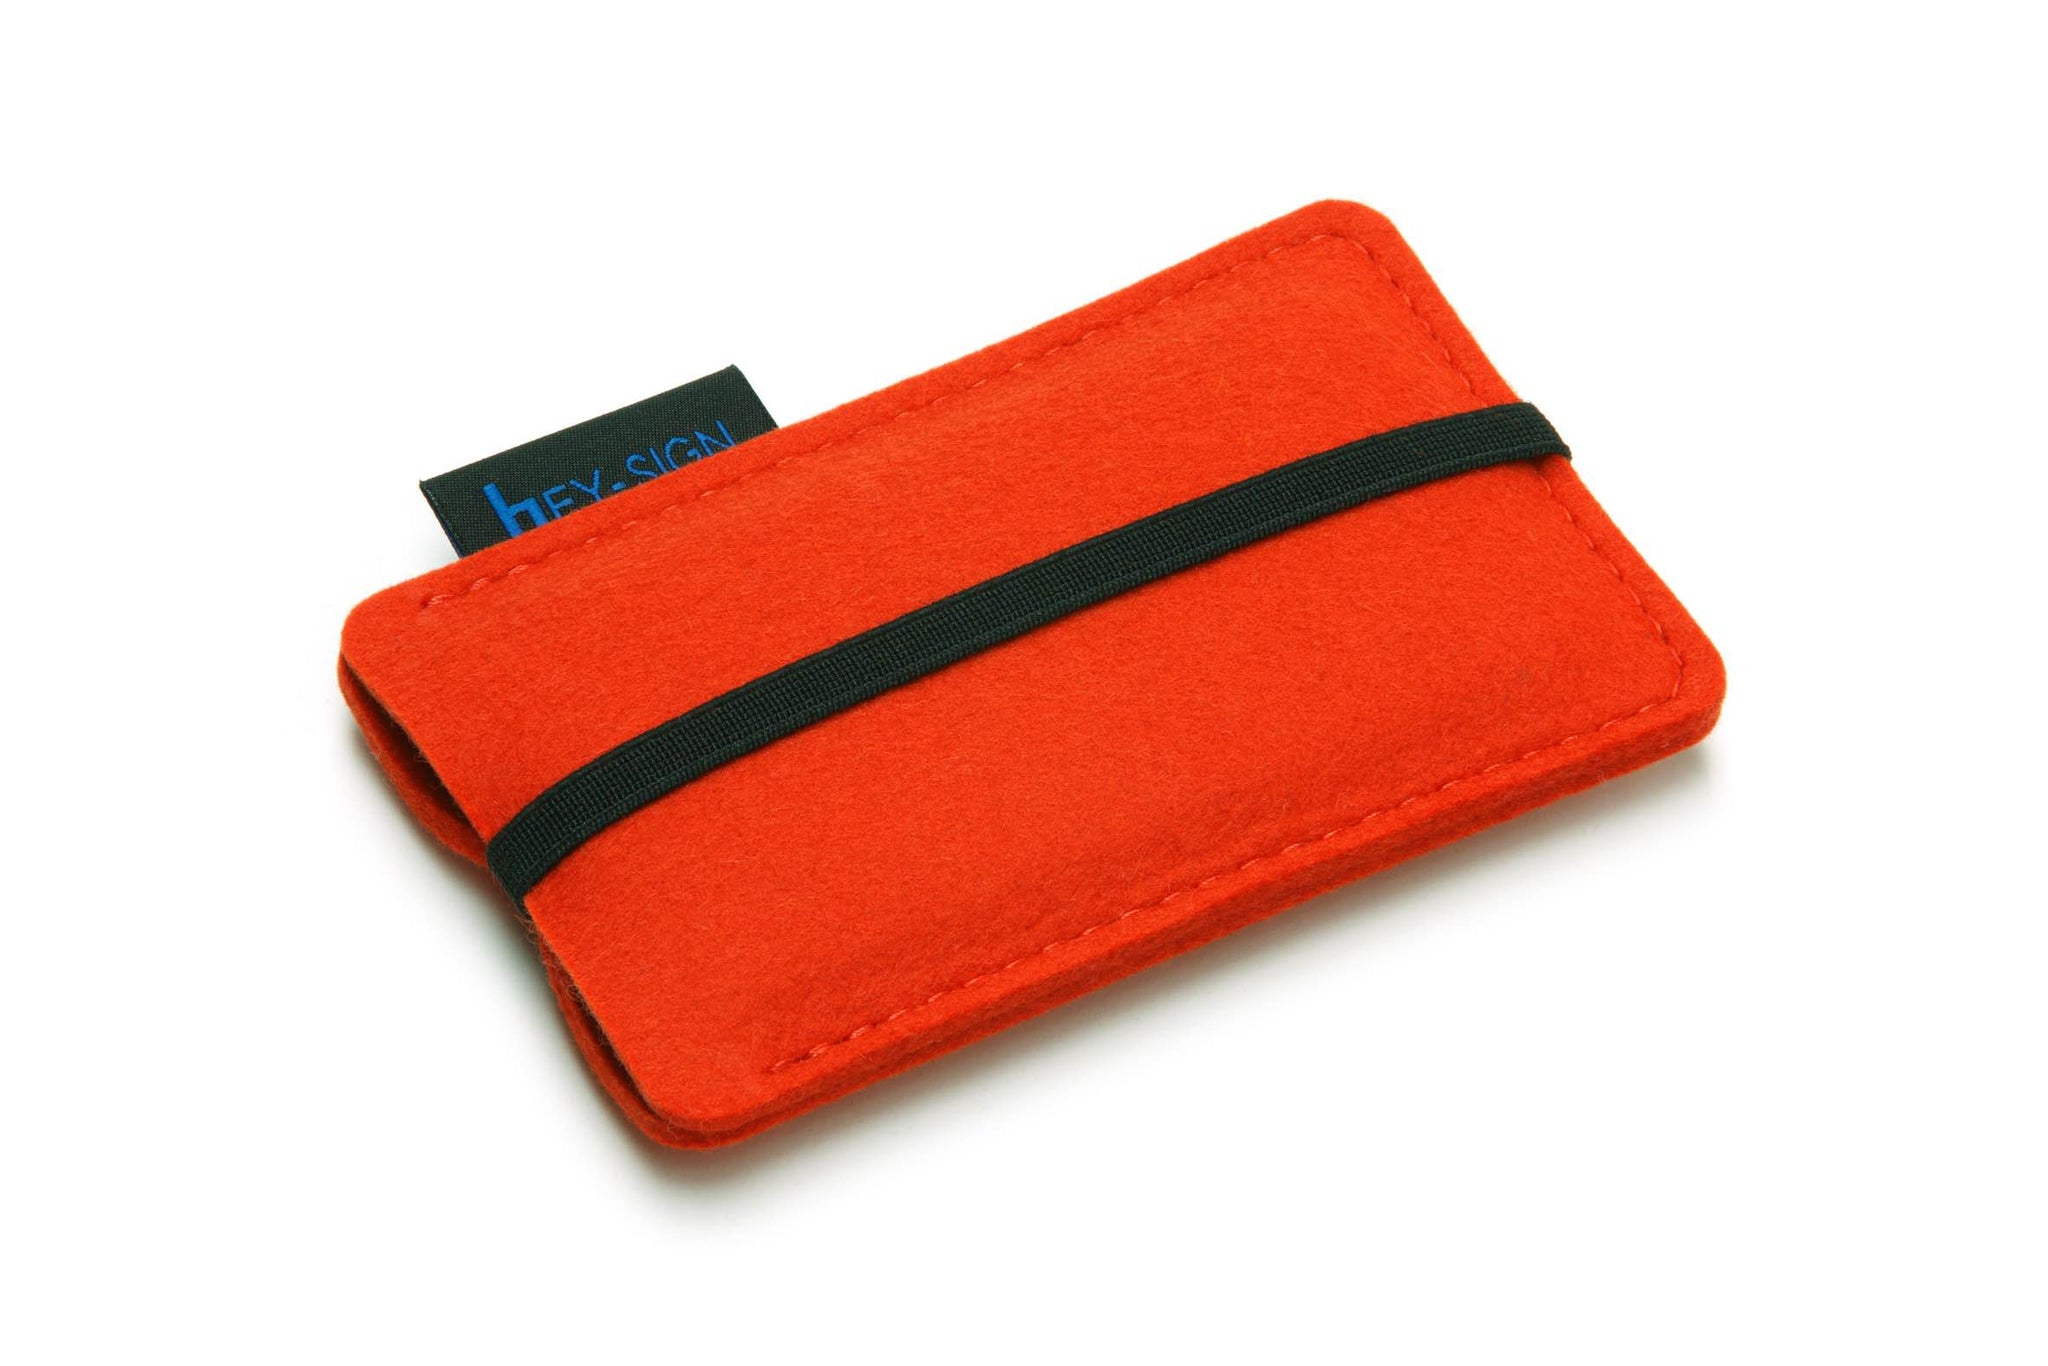 Felt Smartphone Sleeve or Pouch in Mango by Hey-Sign 301031420